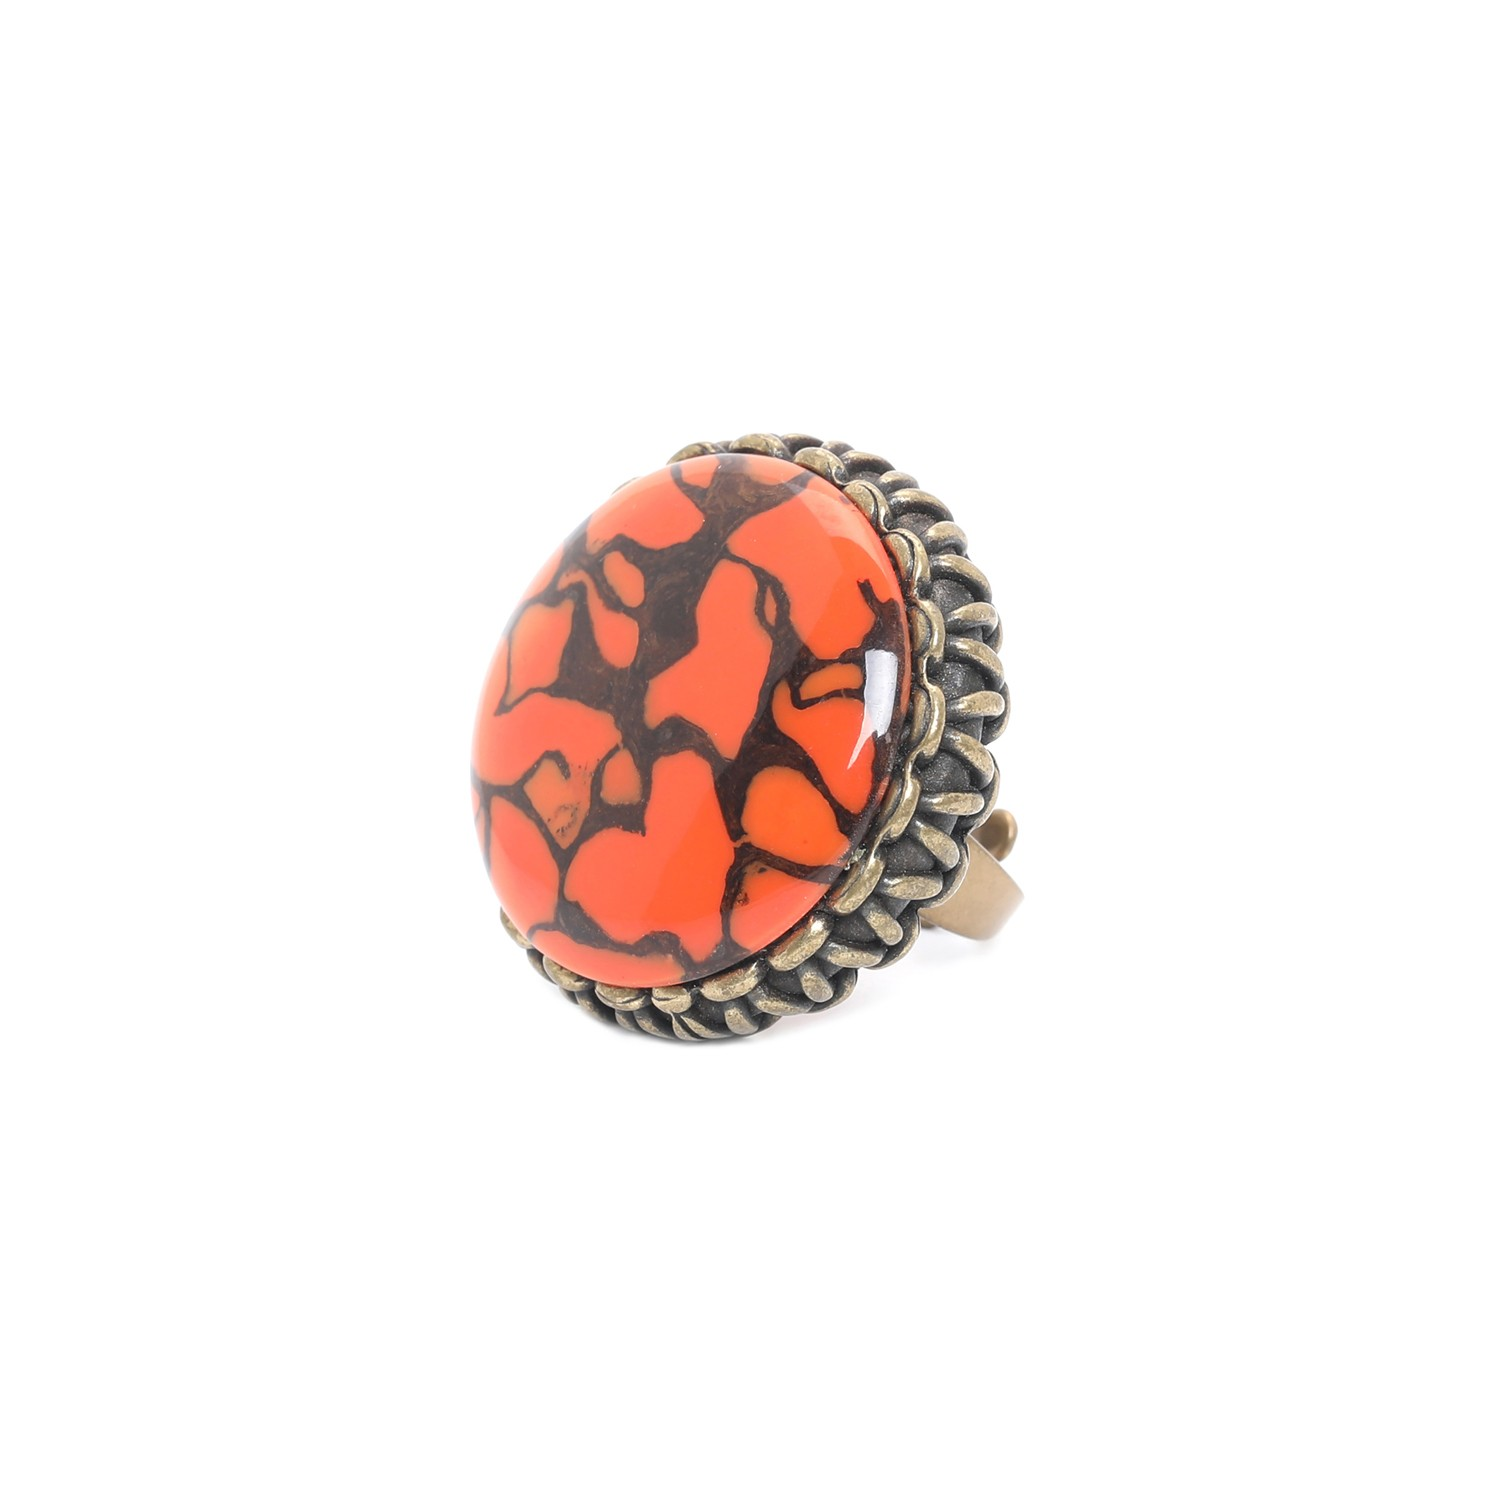 MELTING POT bague ronde